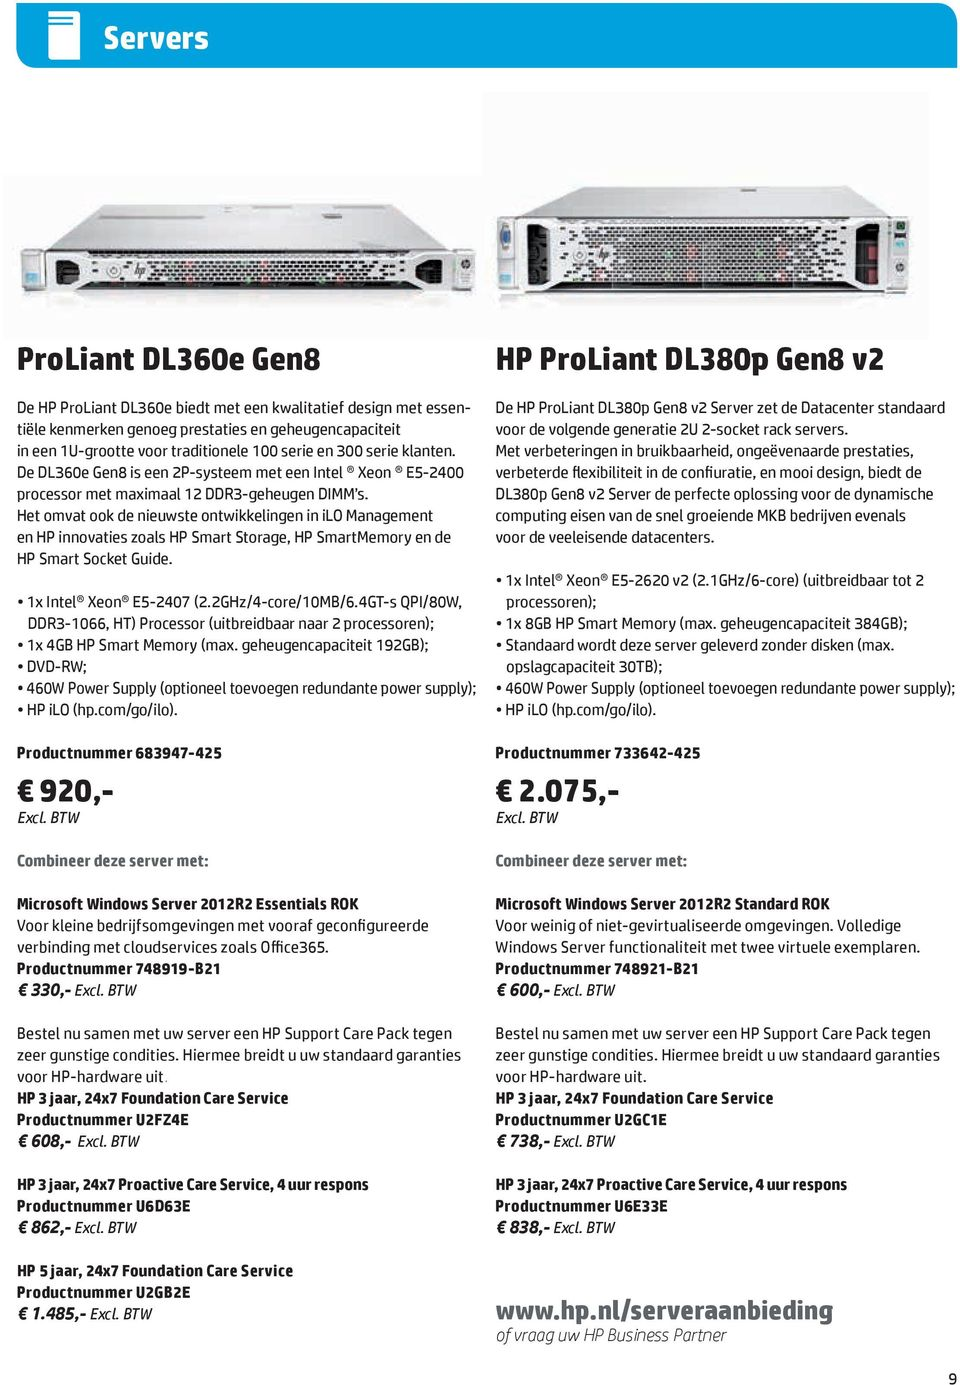 Het omvat ook de nieuwste ontwikkelingen in ilo Management en HP innovaties zoals HP Smart Storage, HP SmartMemory en de HP Smart Socket Guide. 1x Intel Xeon E5-2407 (2.2GHz/4-core/10MB/6.